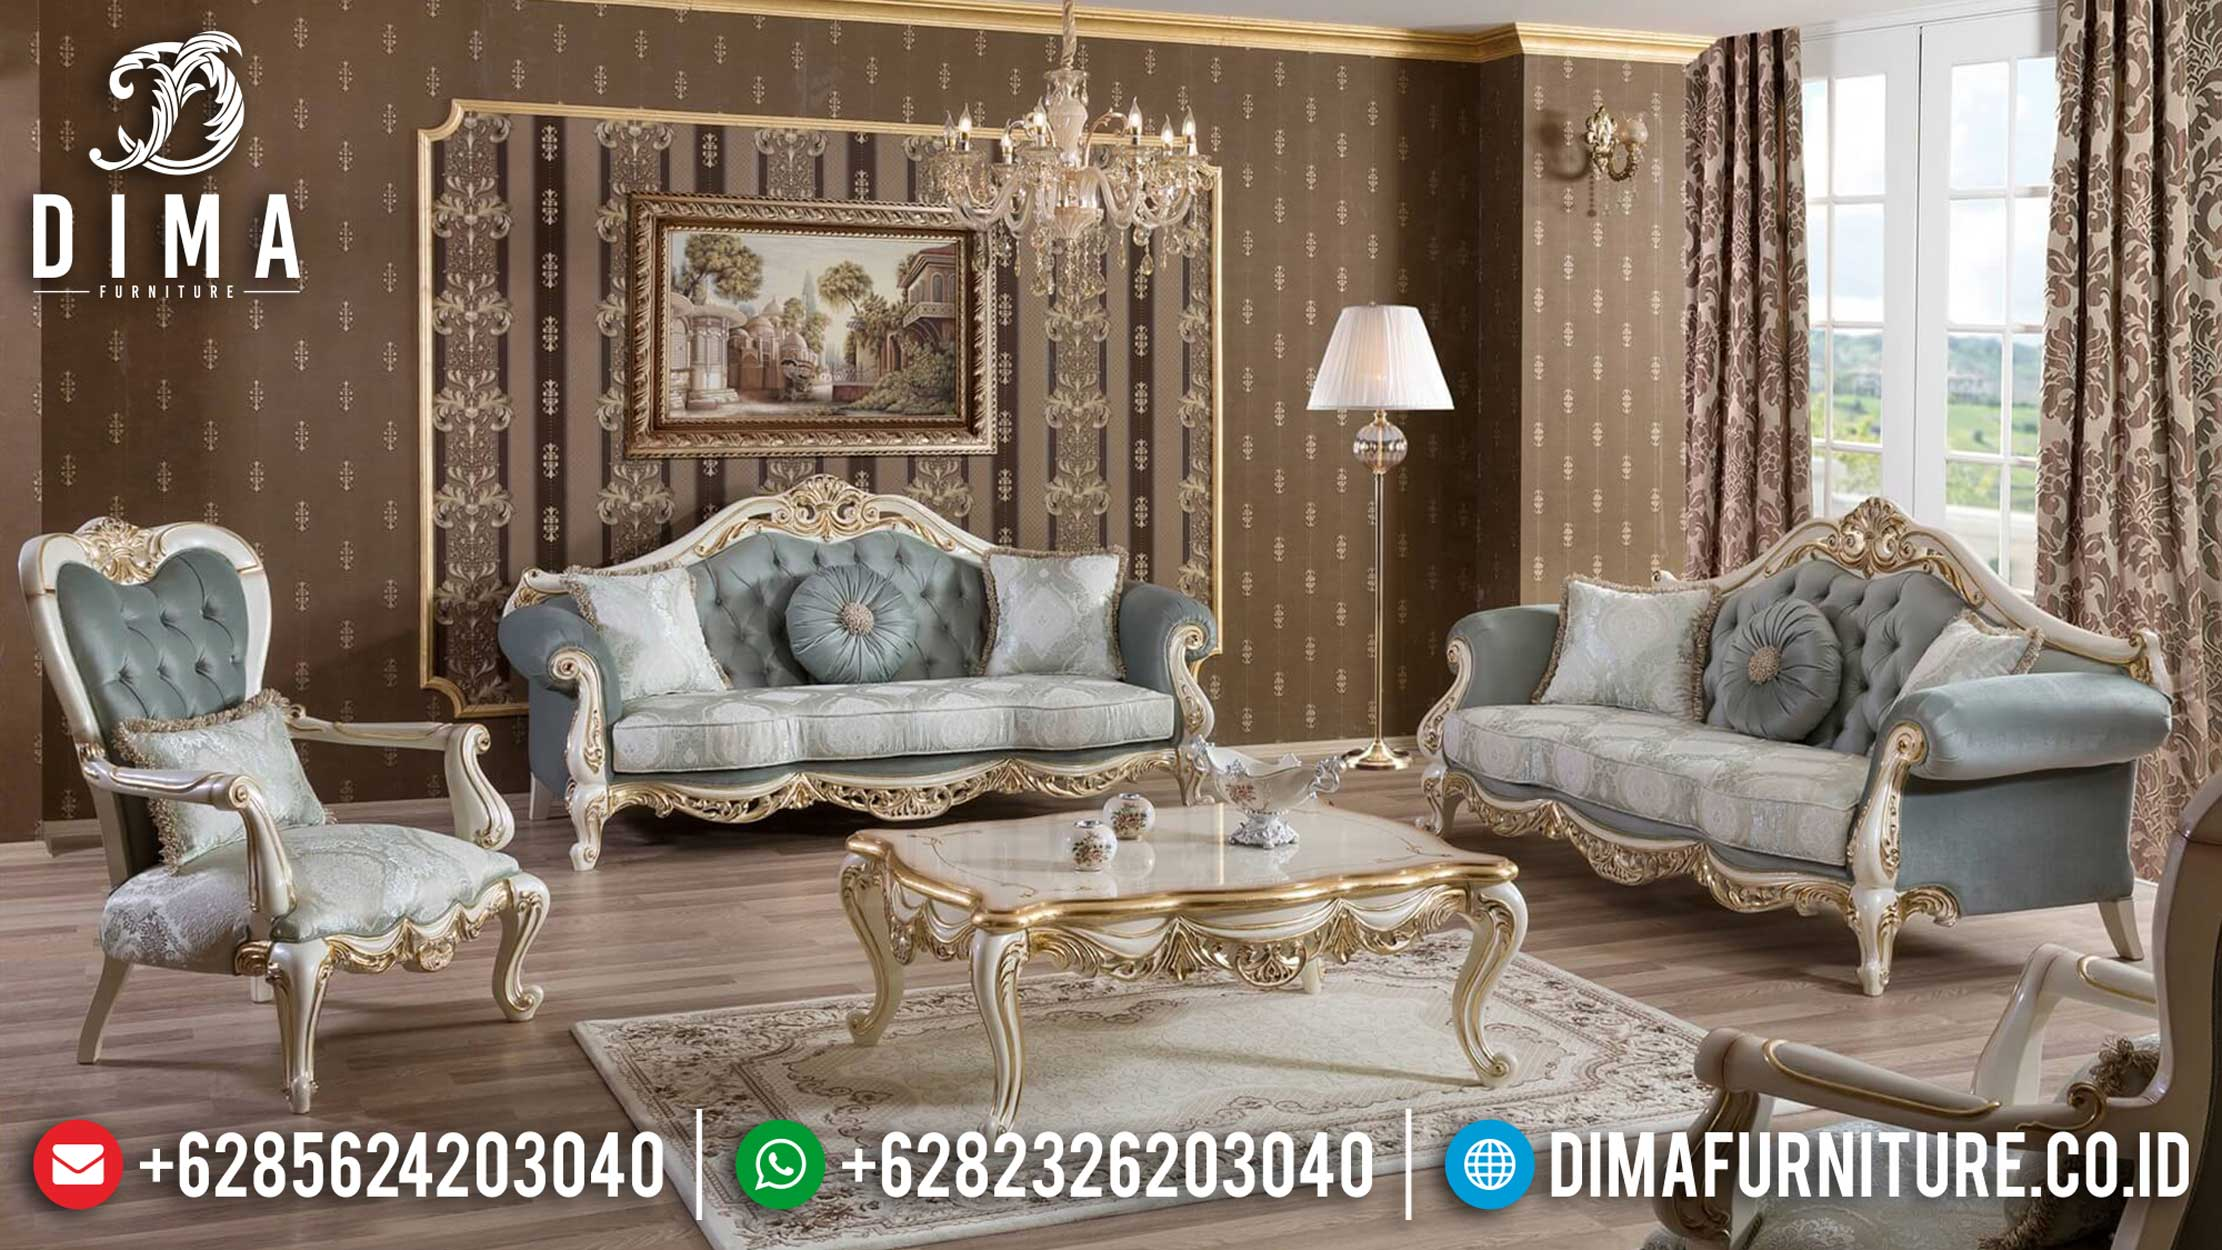 The Greatest Sofa Tamu Mewah Koltuk Turkish Design Luxurious Living Room BT-0853